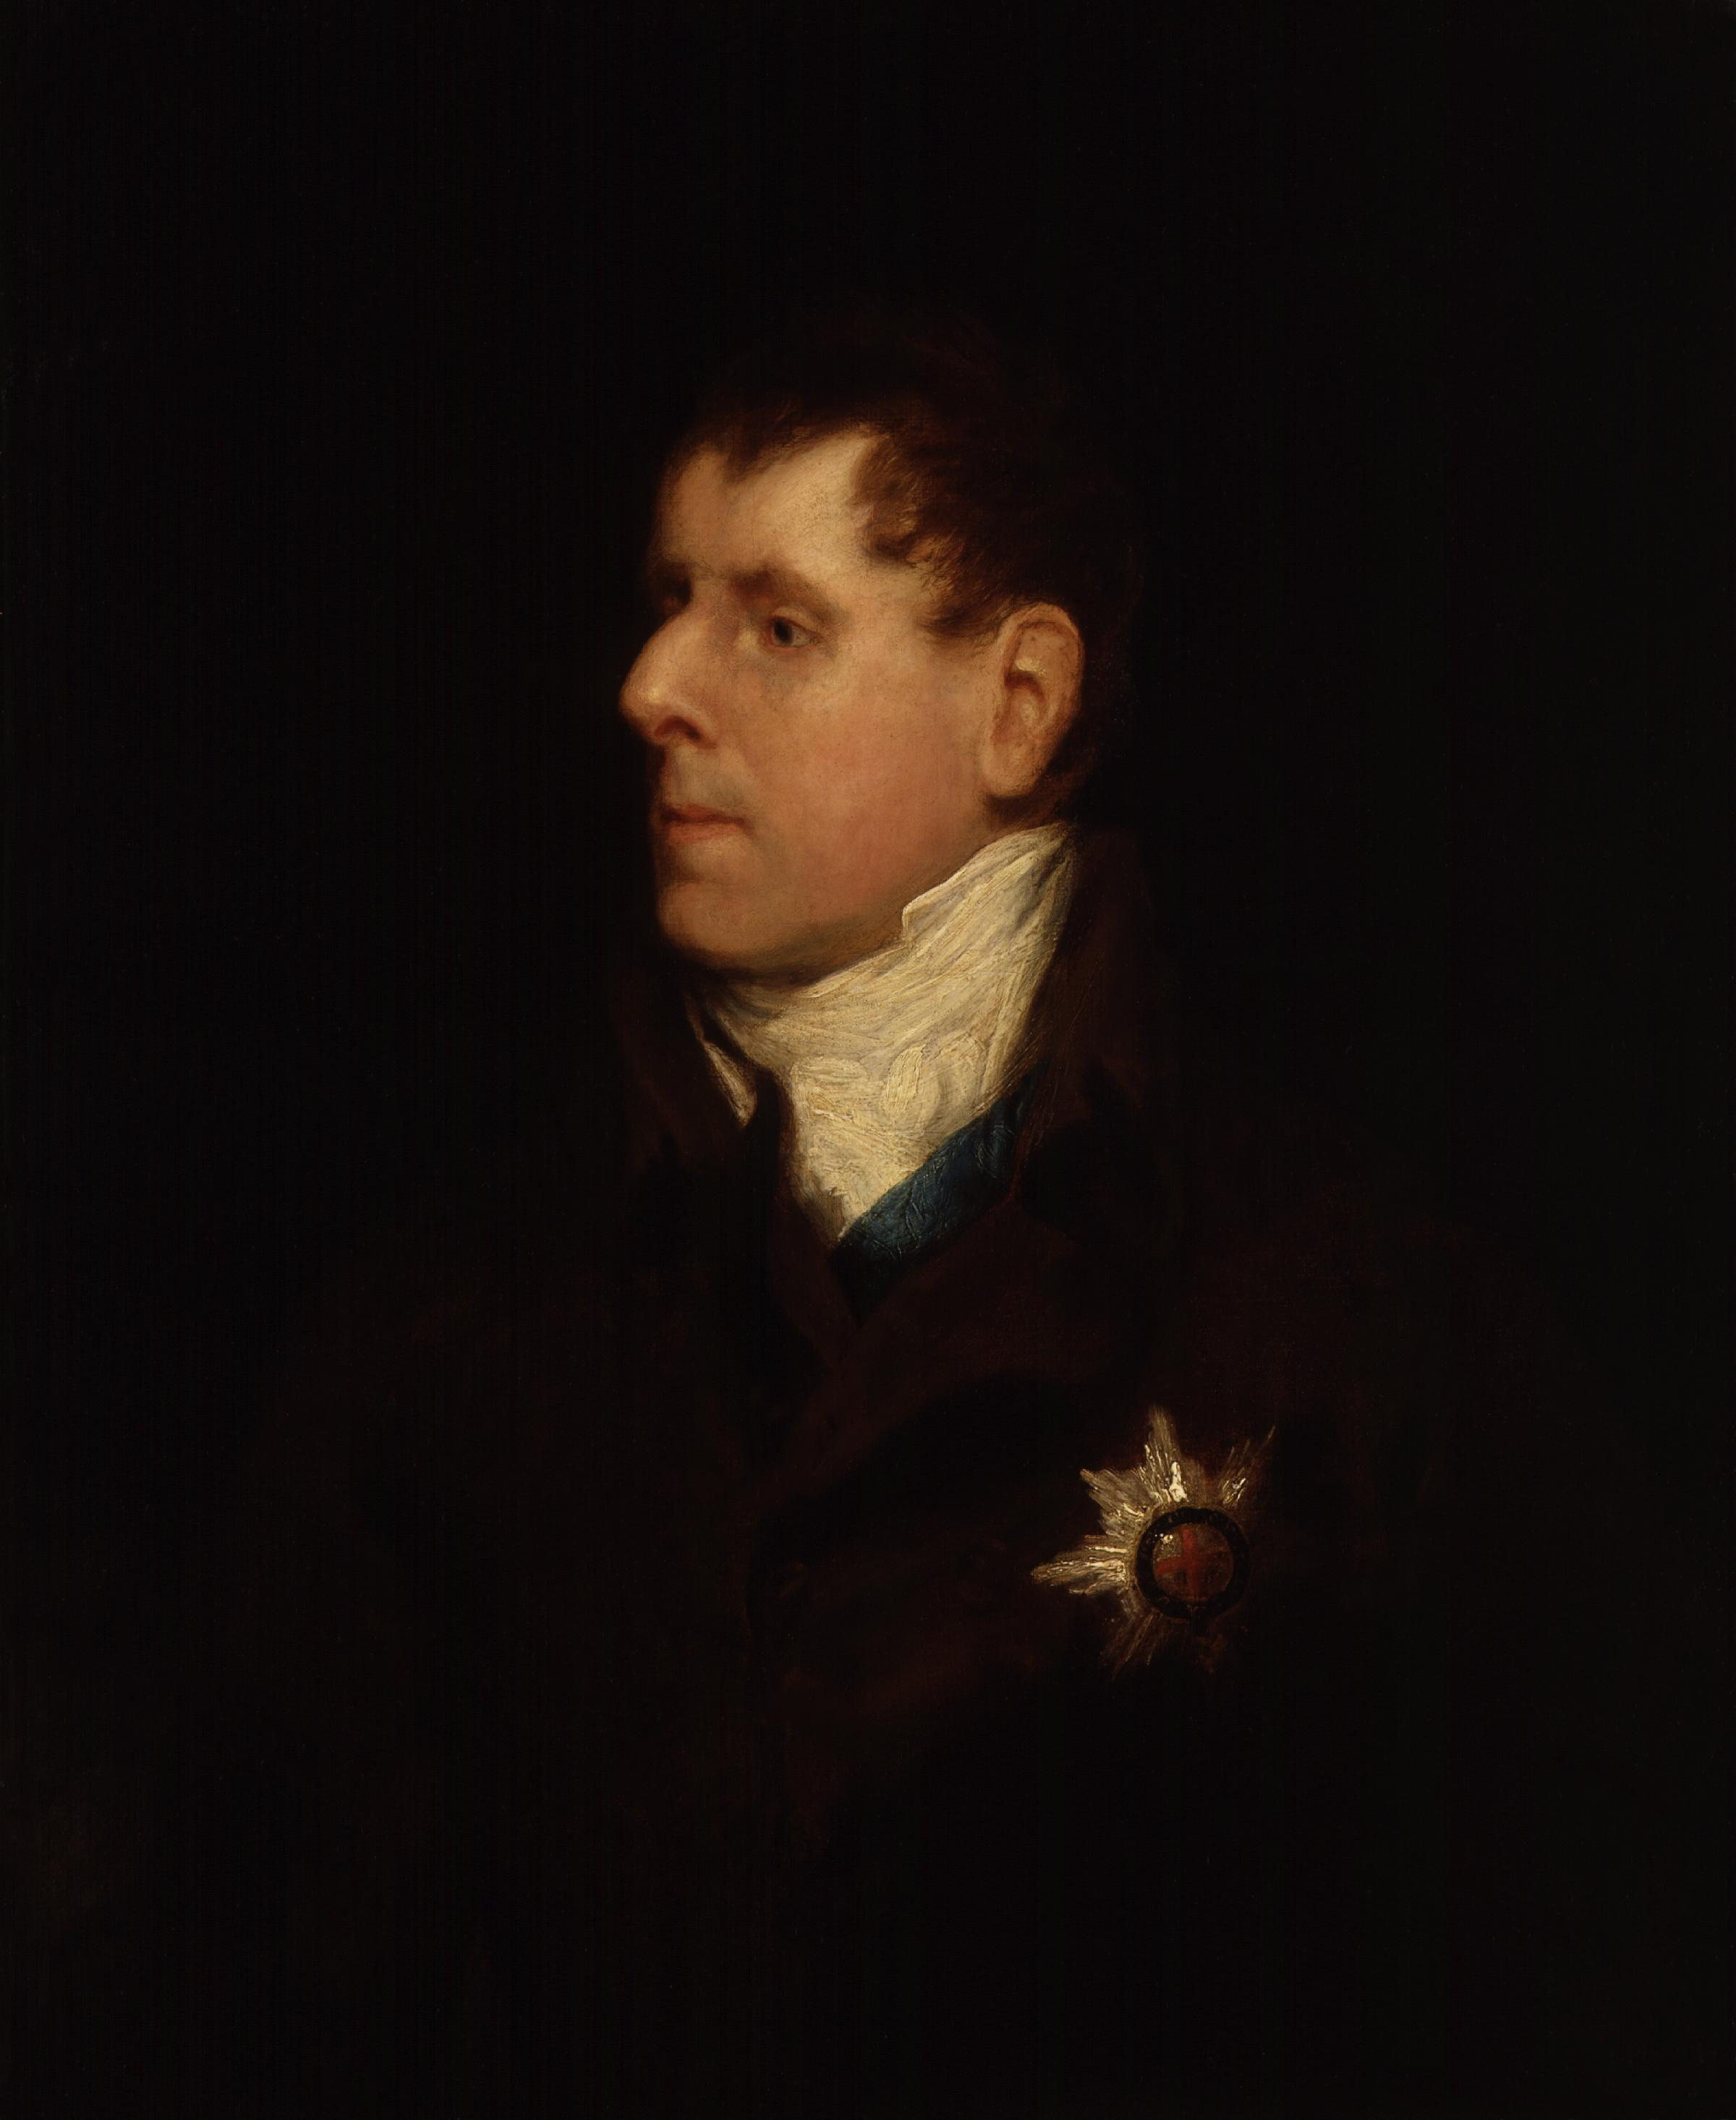 George Leveson-Gower, 1st Duke of Sutherland